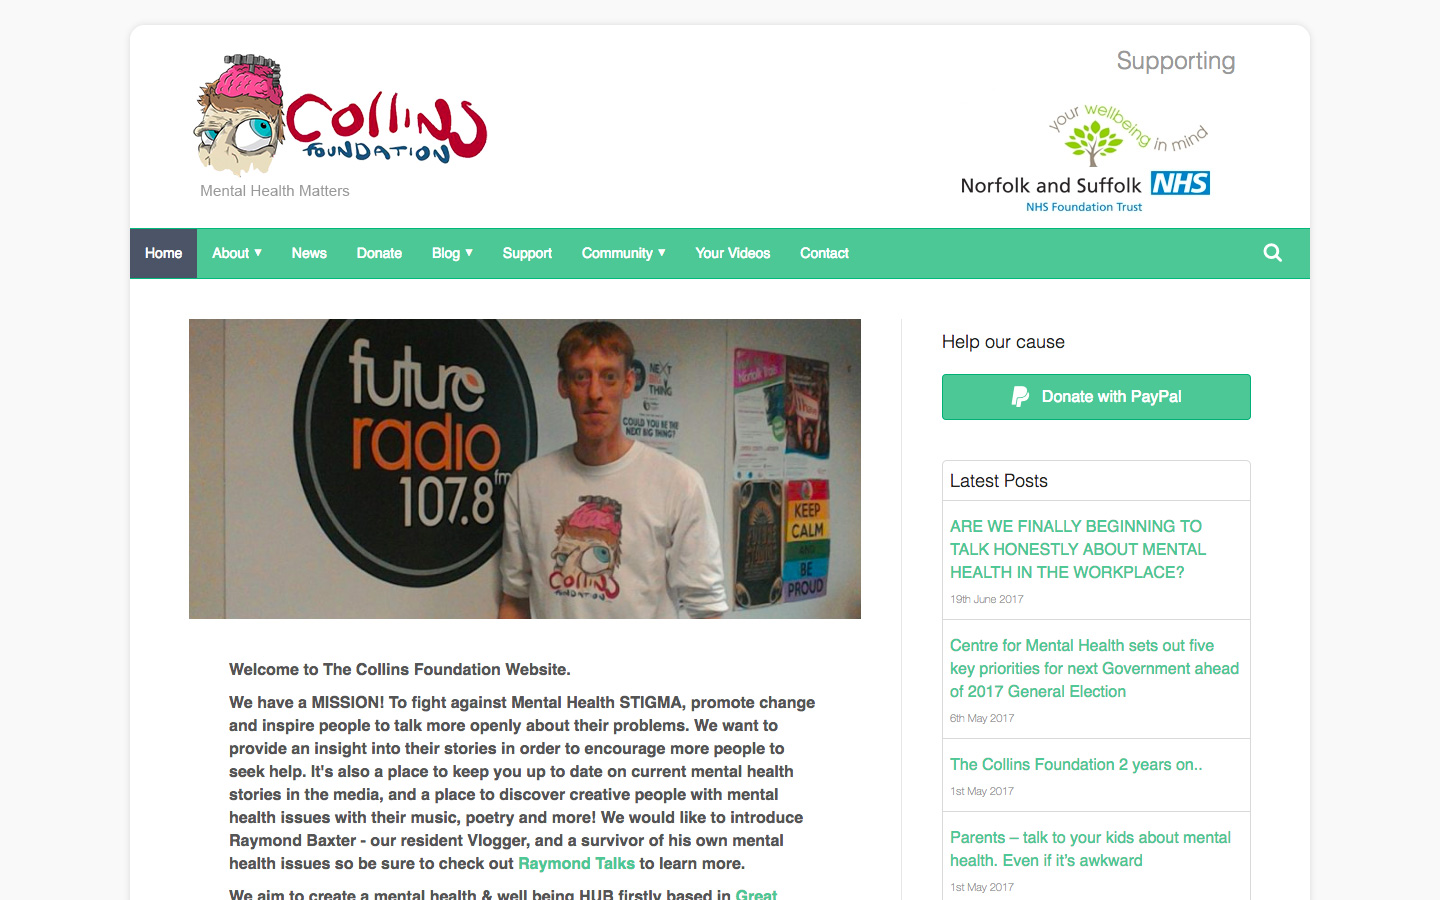 Web Hosting & Design for The Collins Foundation